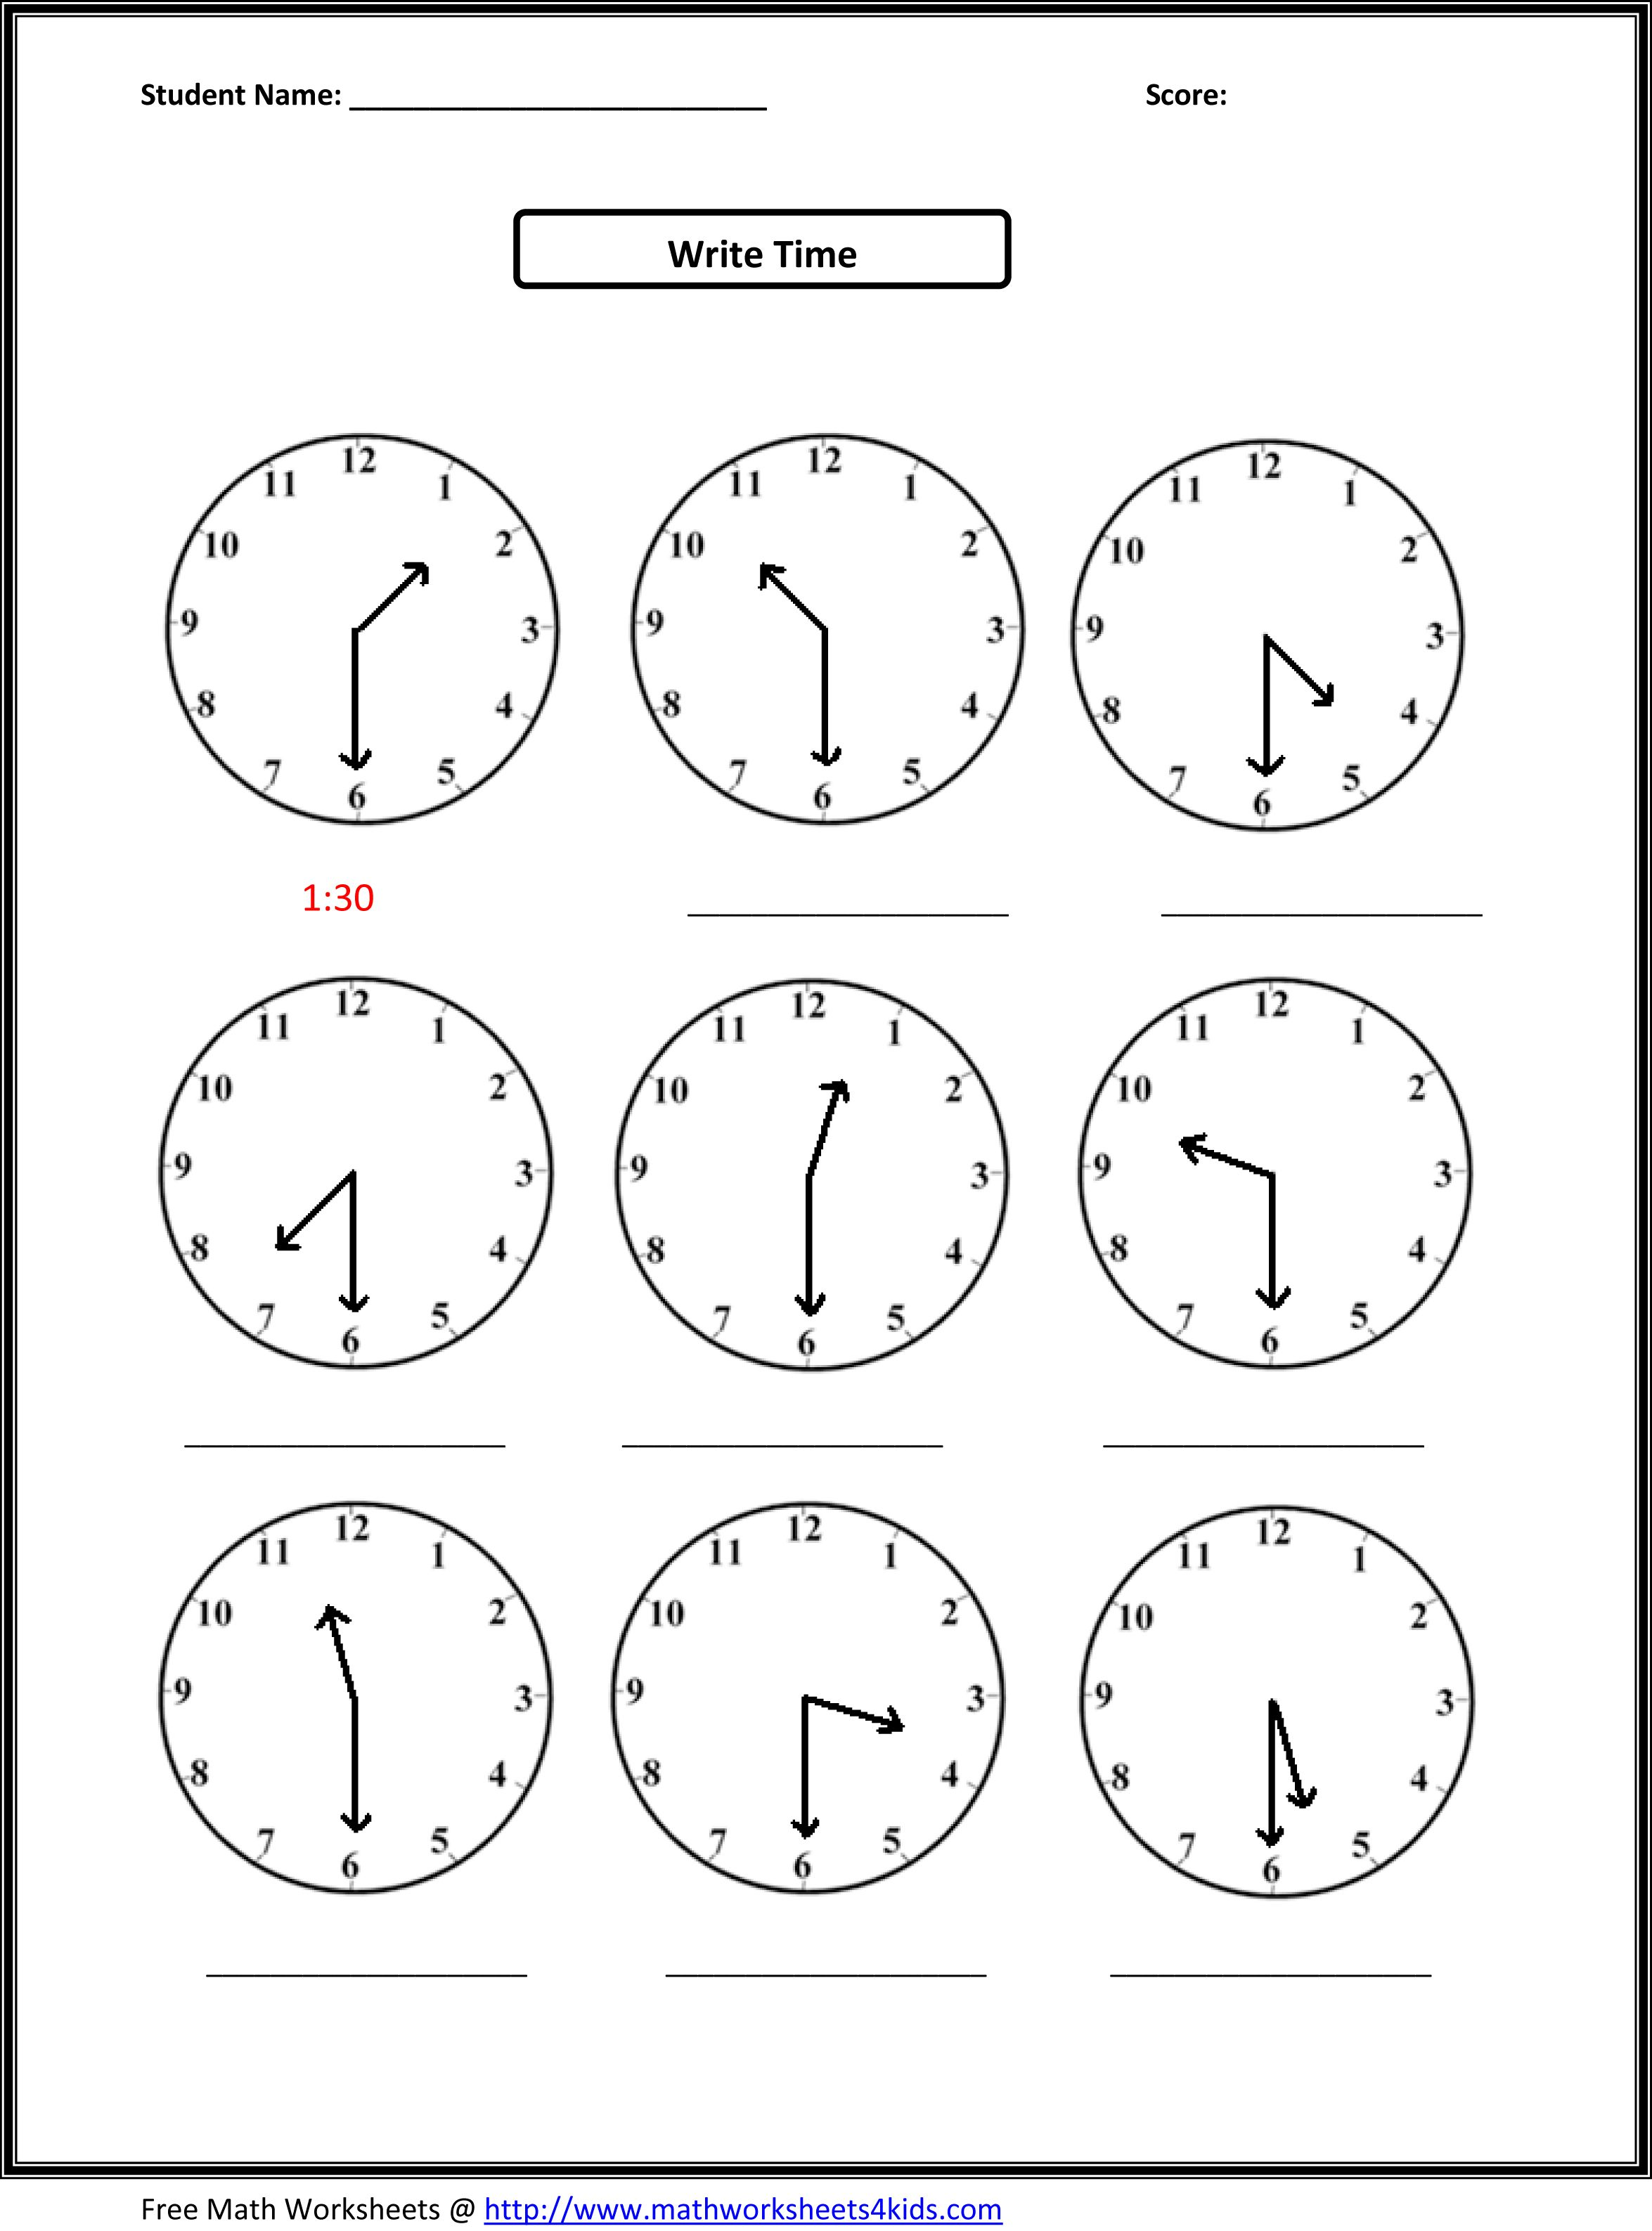 Weirdmailus  Nice Worksheet On Time For Grade   Reocurent With Fascinating Free Printable Telling Time Worksheets Nd Grade  Reocurent With Charming Comparing Fractions Worksheet Also Anger Management Worksheets In Addition Sequencing Worksheets And Tracing Worksheets As Well As Cell Membrane Coloring Worksheet Additionally Probability Worksheets From Reocurentcom With Weirdmailus  Fascinating Worksheet On Time For Grade   Reocurent With Charming Free Printable Telling Time Worksheets Nd Grade  Reocurent And Nice Comparing Fractions Worksheet Also Anger Management Worksheets In Addition Sequencing Worksheets From Reocurentcom